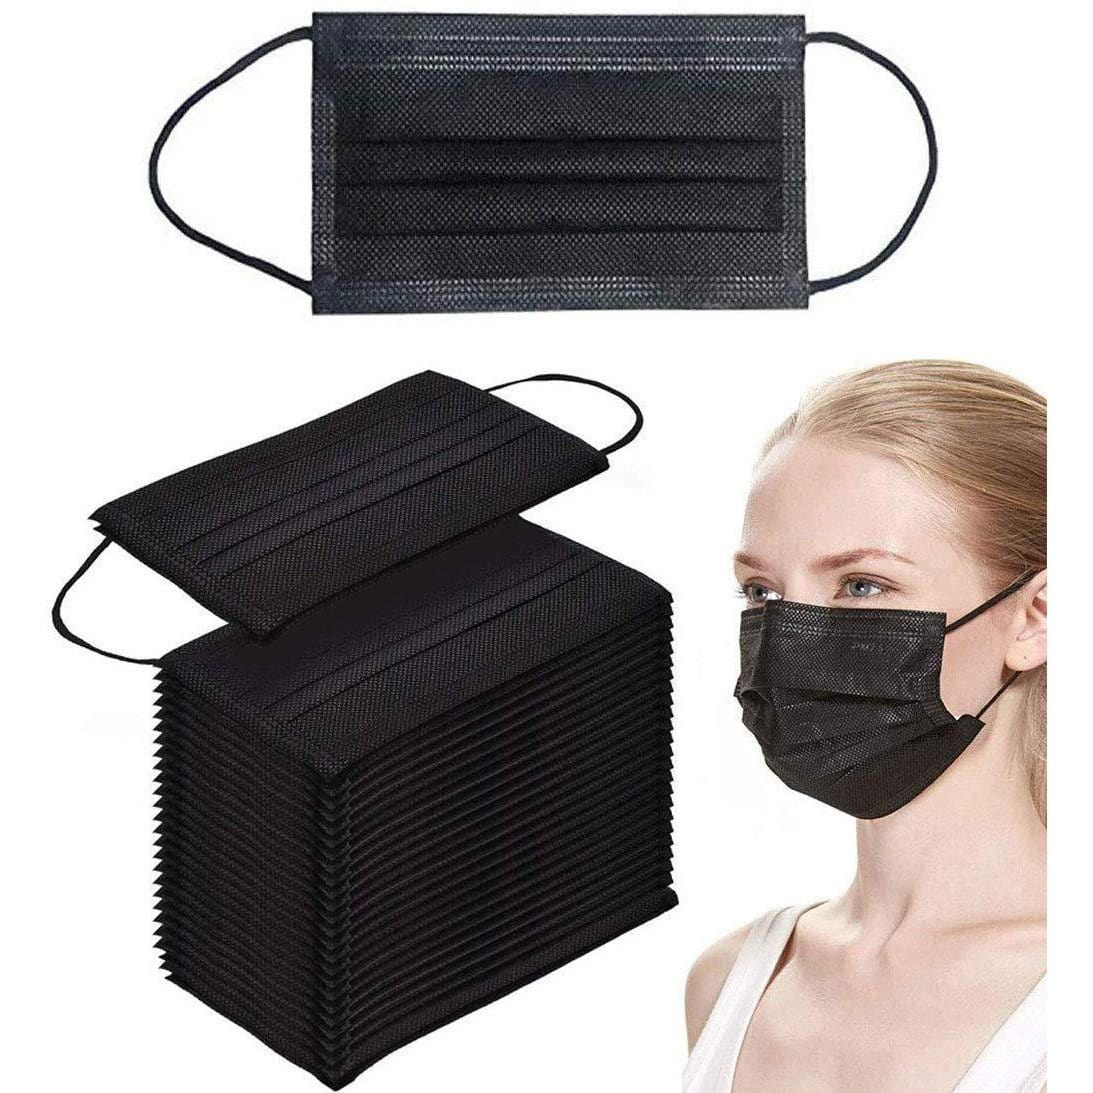 Face mask, Disposable mask, Black mask, 3 layer mask, 3 ply mask